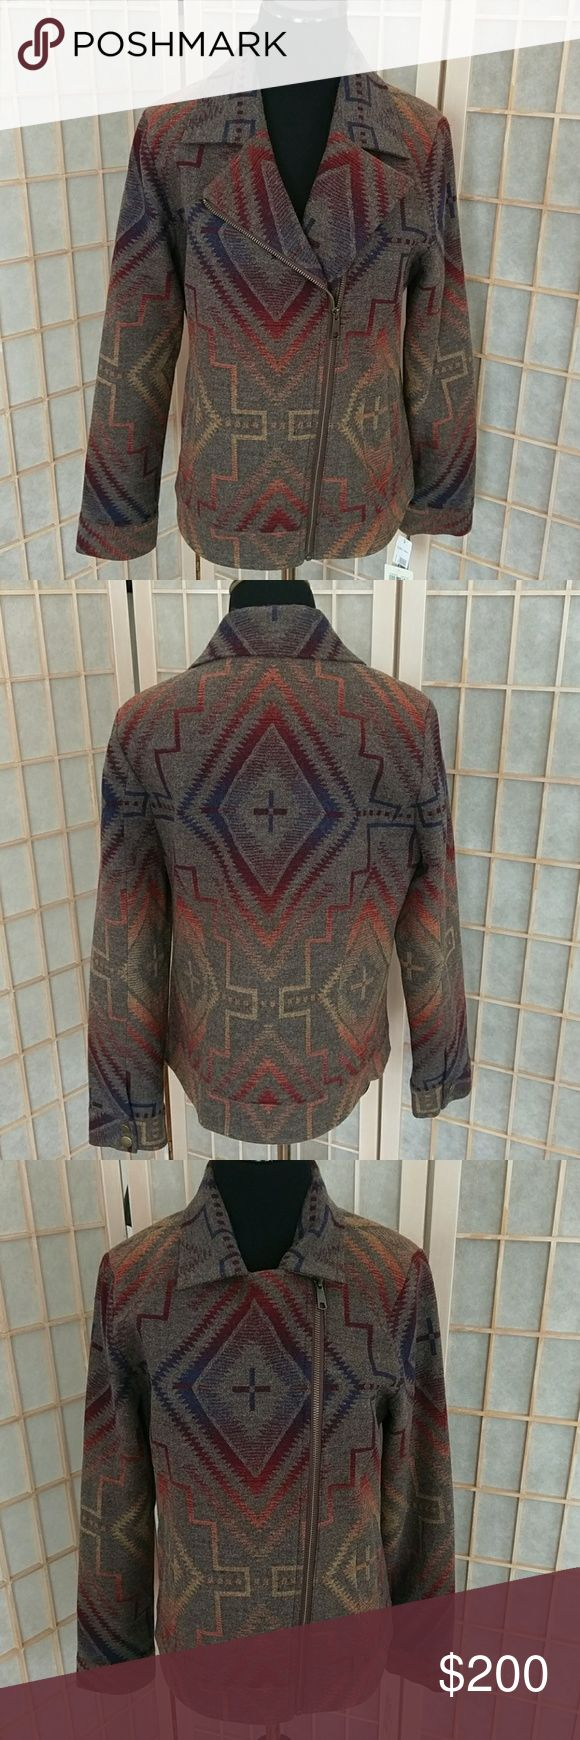 NWT Pendleton wool jacquard moto jacket NWT Pendleton brand collaboration with Lucky Brand wool Sundown jacquard wool motorcycle jacket. Full lined. Zipper closure. Medium Women's size. Southwest classic design. 100% wool. Lining Polyester 100%. Rainbow. Pendleton Jackets & Coats